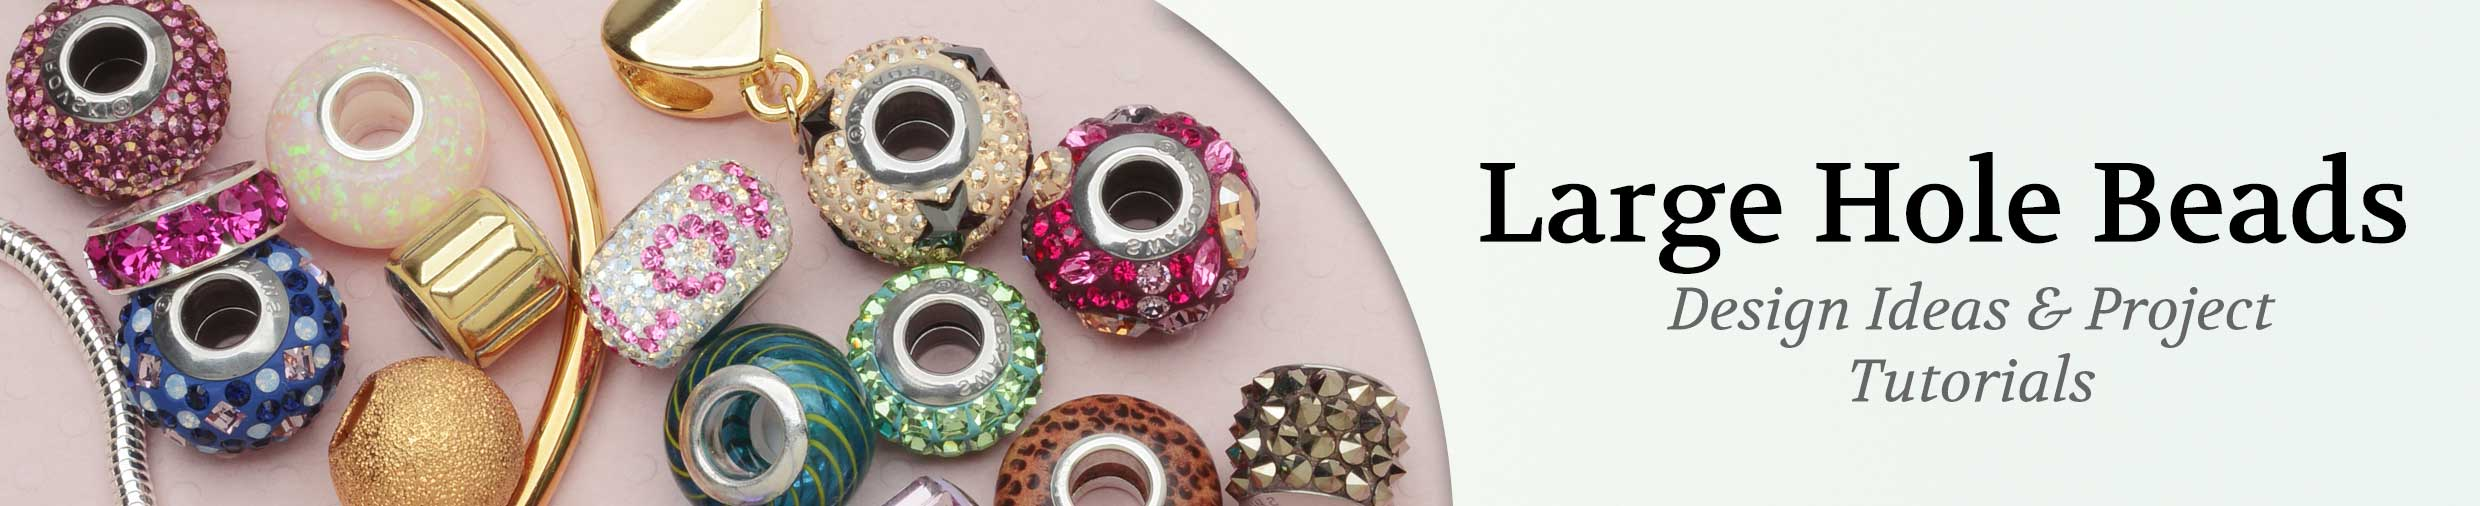 Large Hole Beads - Design Ideas & Project Tutorials